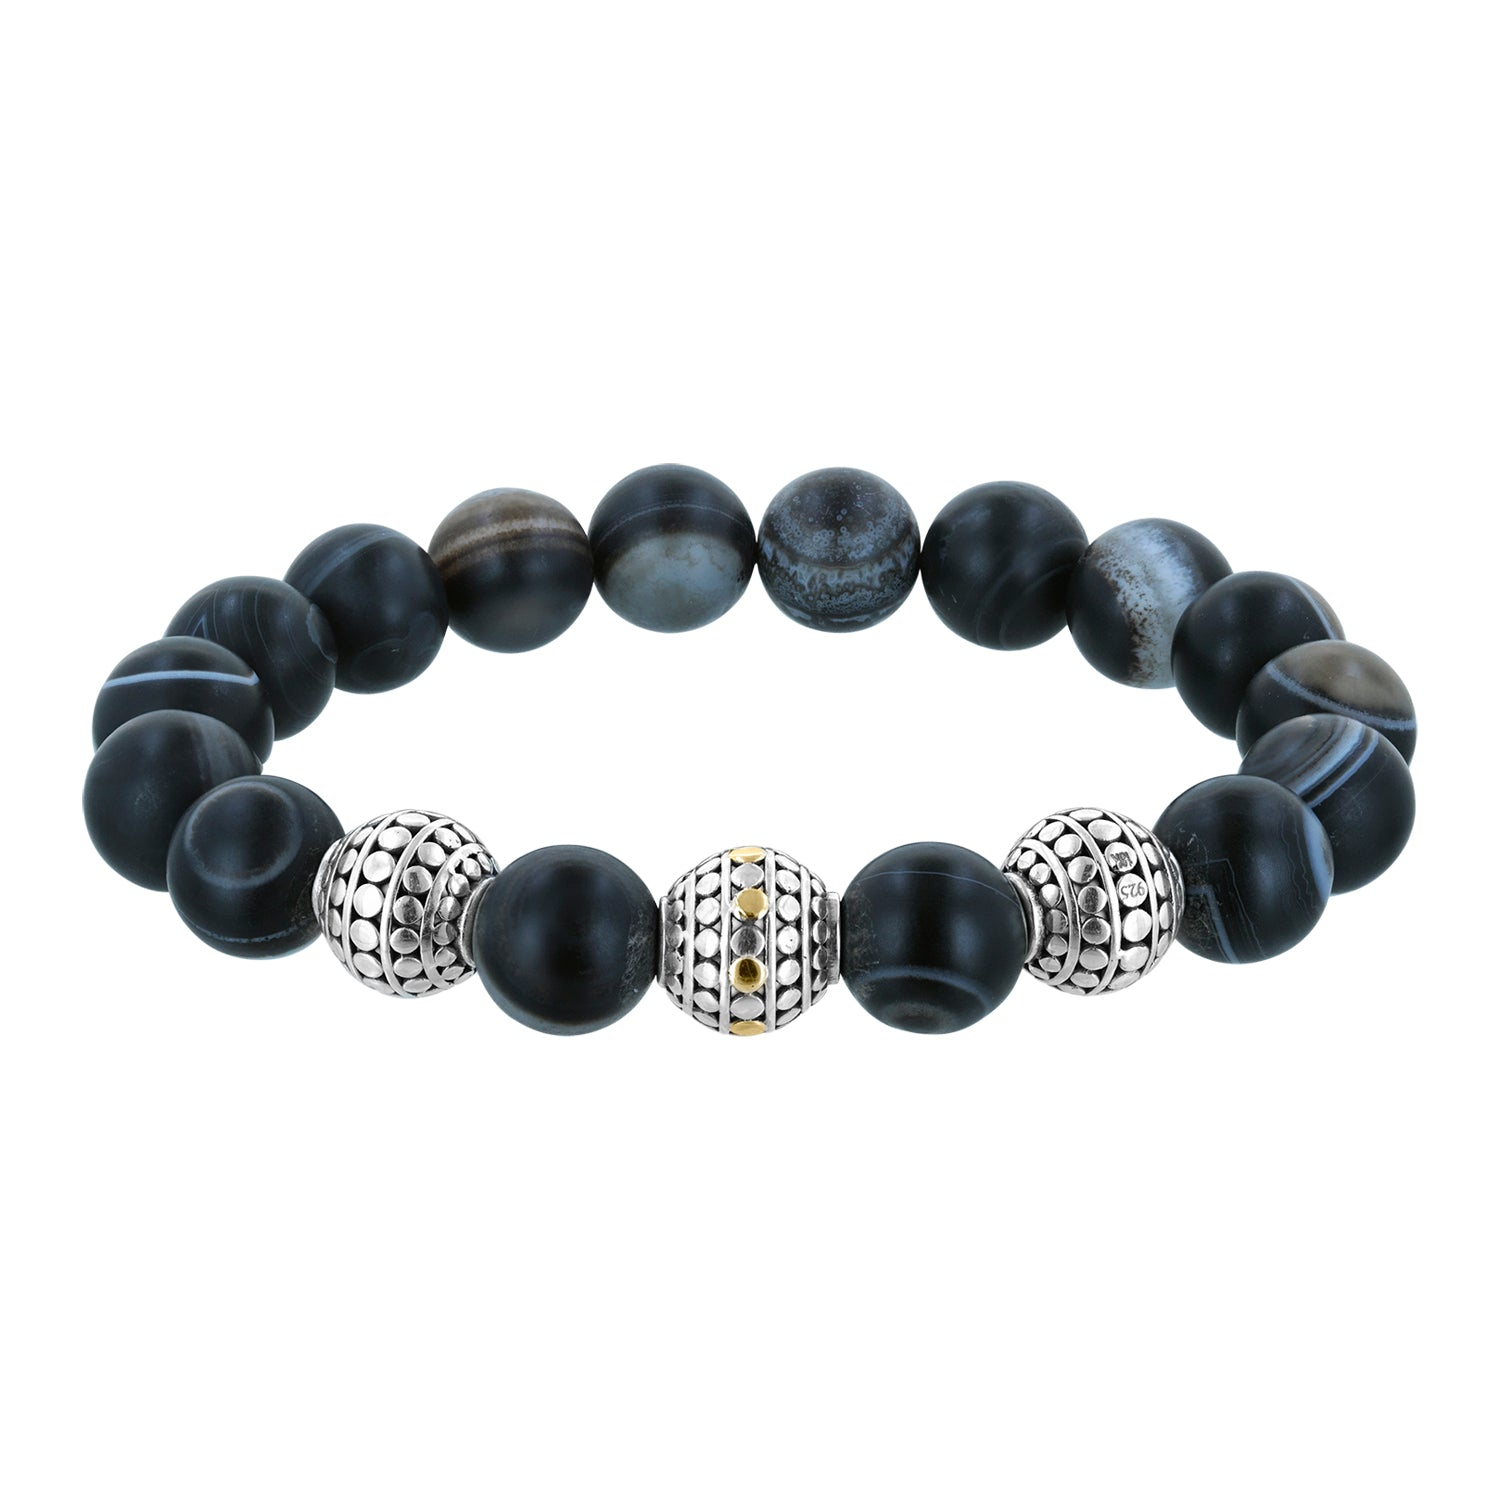 Stretch Black Line Agate Sterling Silver Beaded Bracelet with 18K Gold Accents